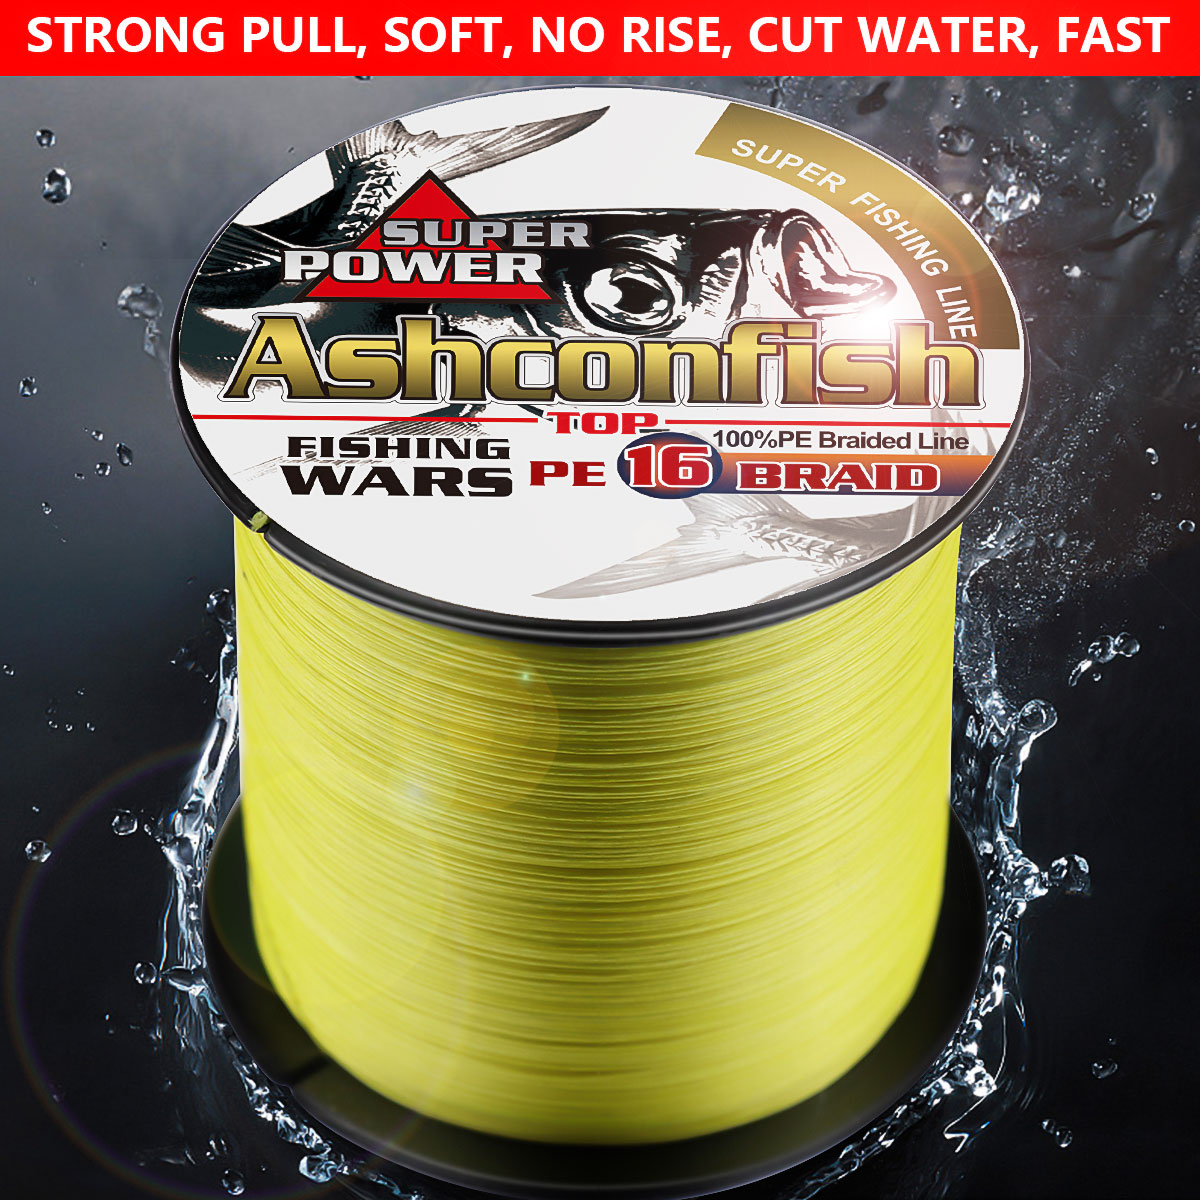 16 Strands super strong braided fishing line pe hollowcore 1500M wire carp fishing saltwater 20 30 60 130 150 200 300 400 500LBS - 6